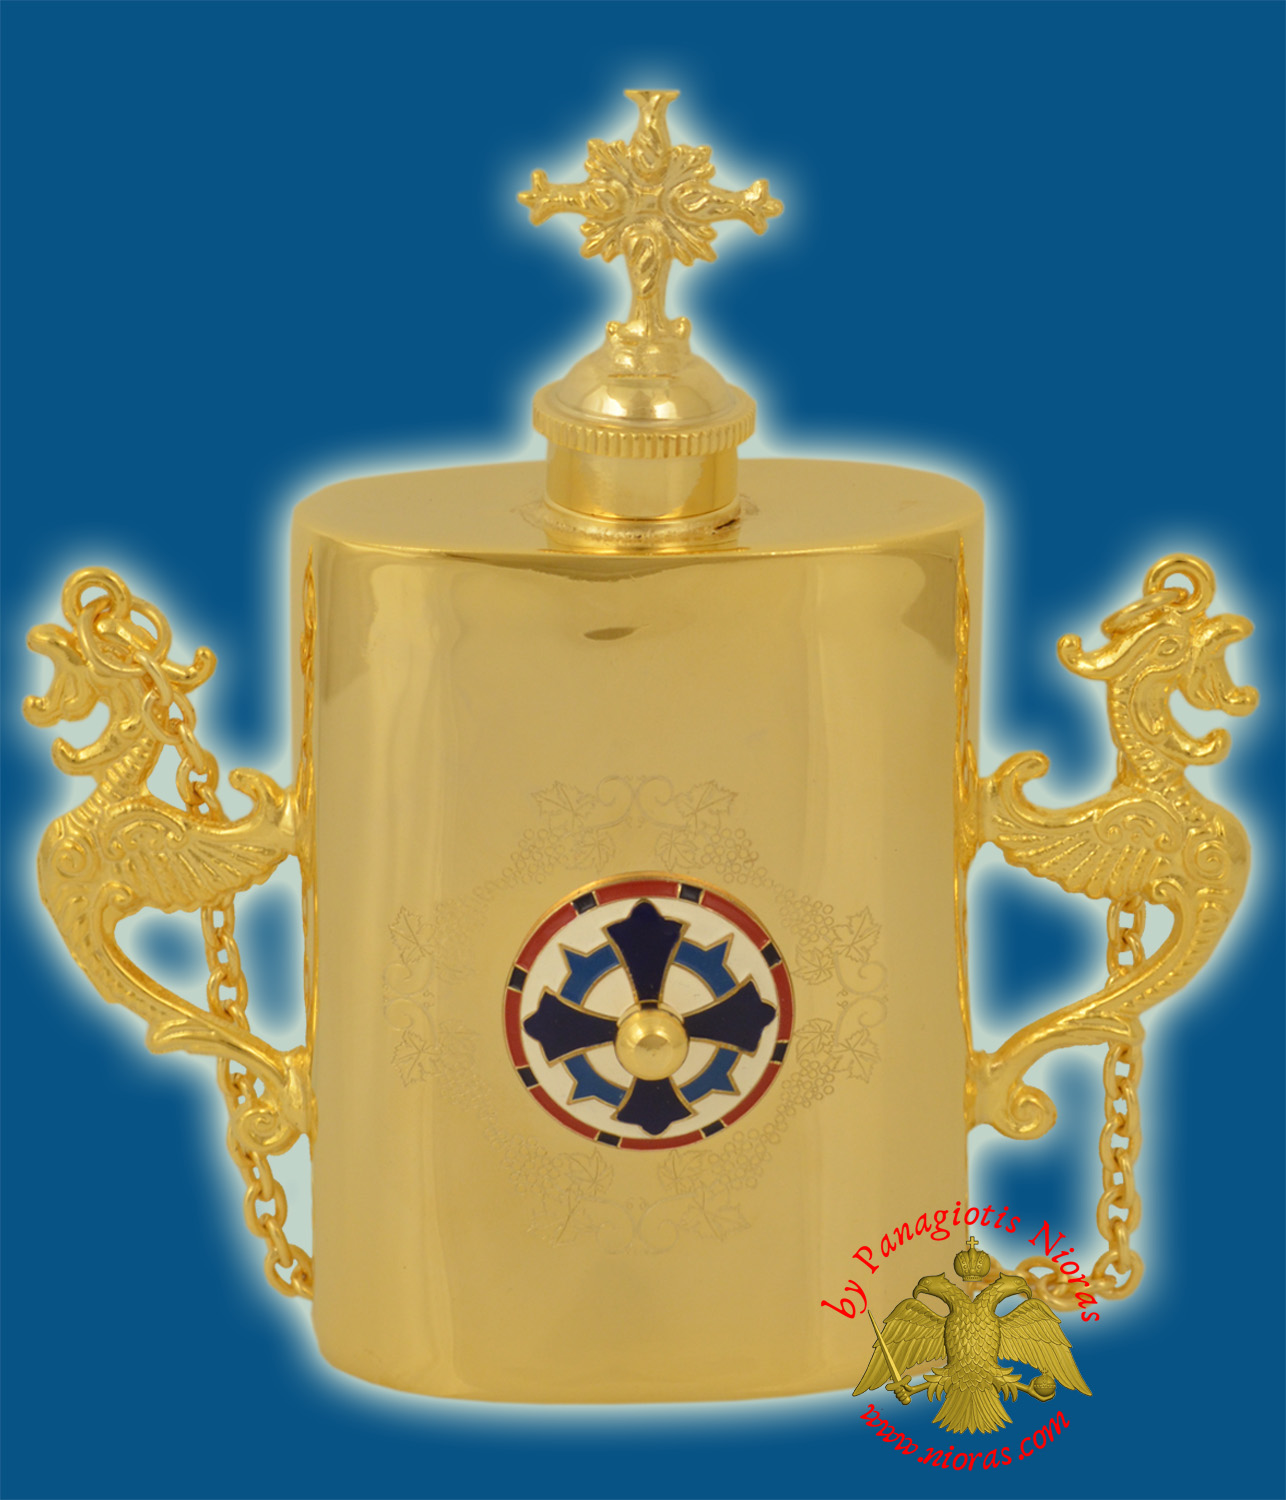 Anointing Holy Oil Gold Plated Metal Vessel With Orthodox Cross Enamel With Vine Engravings